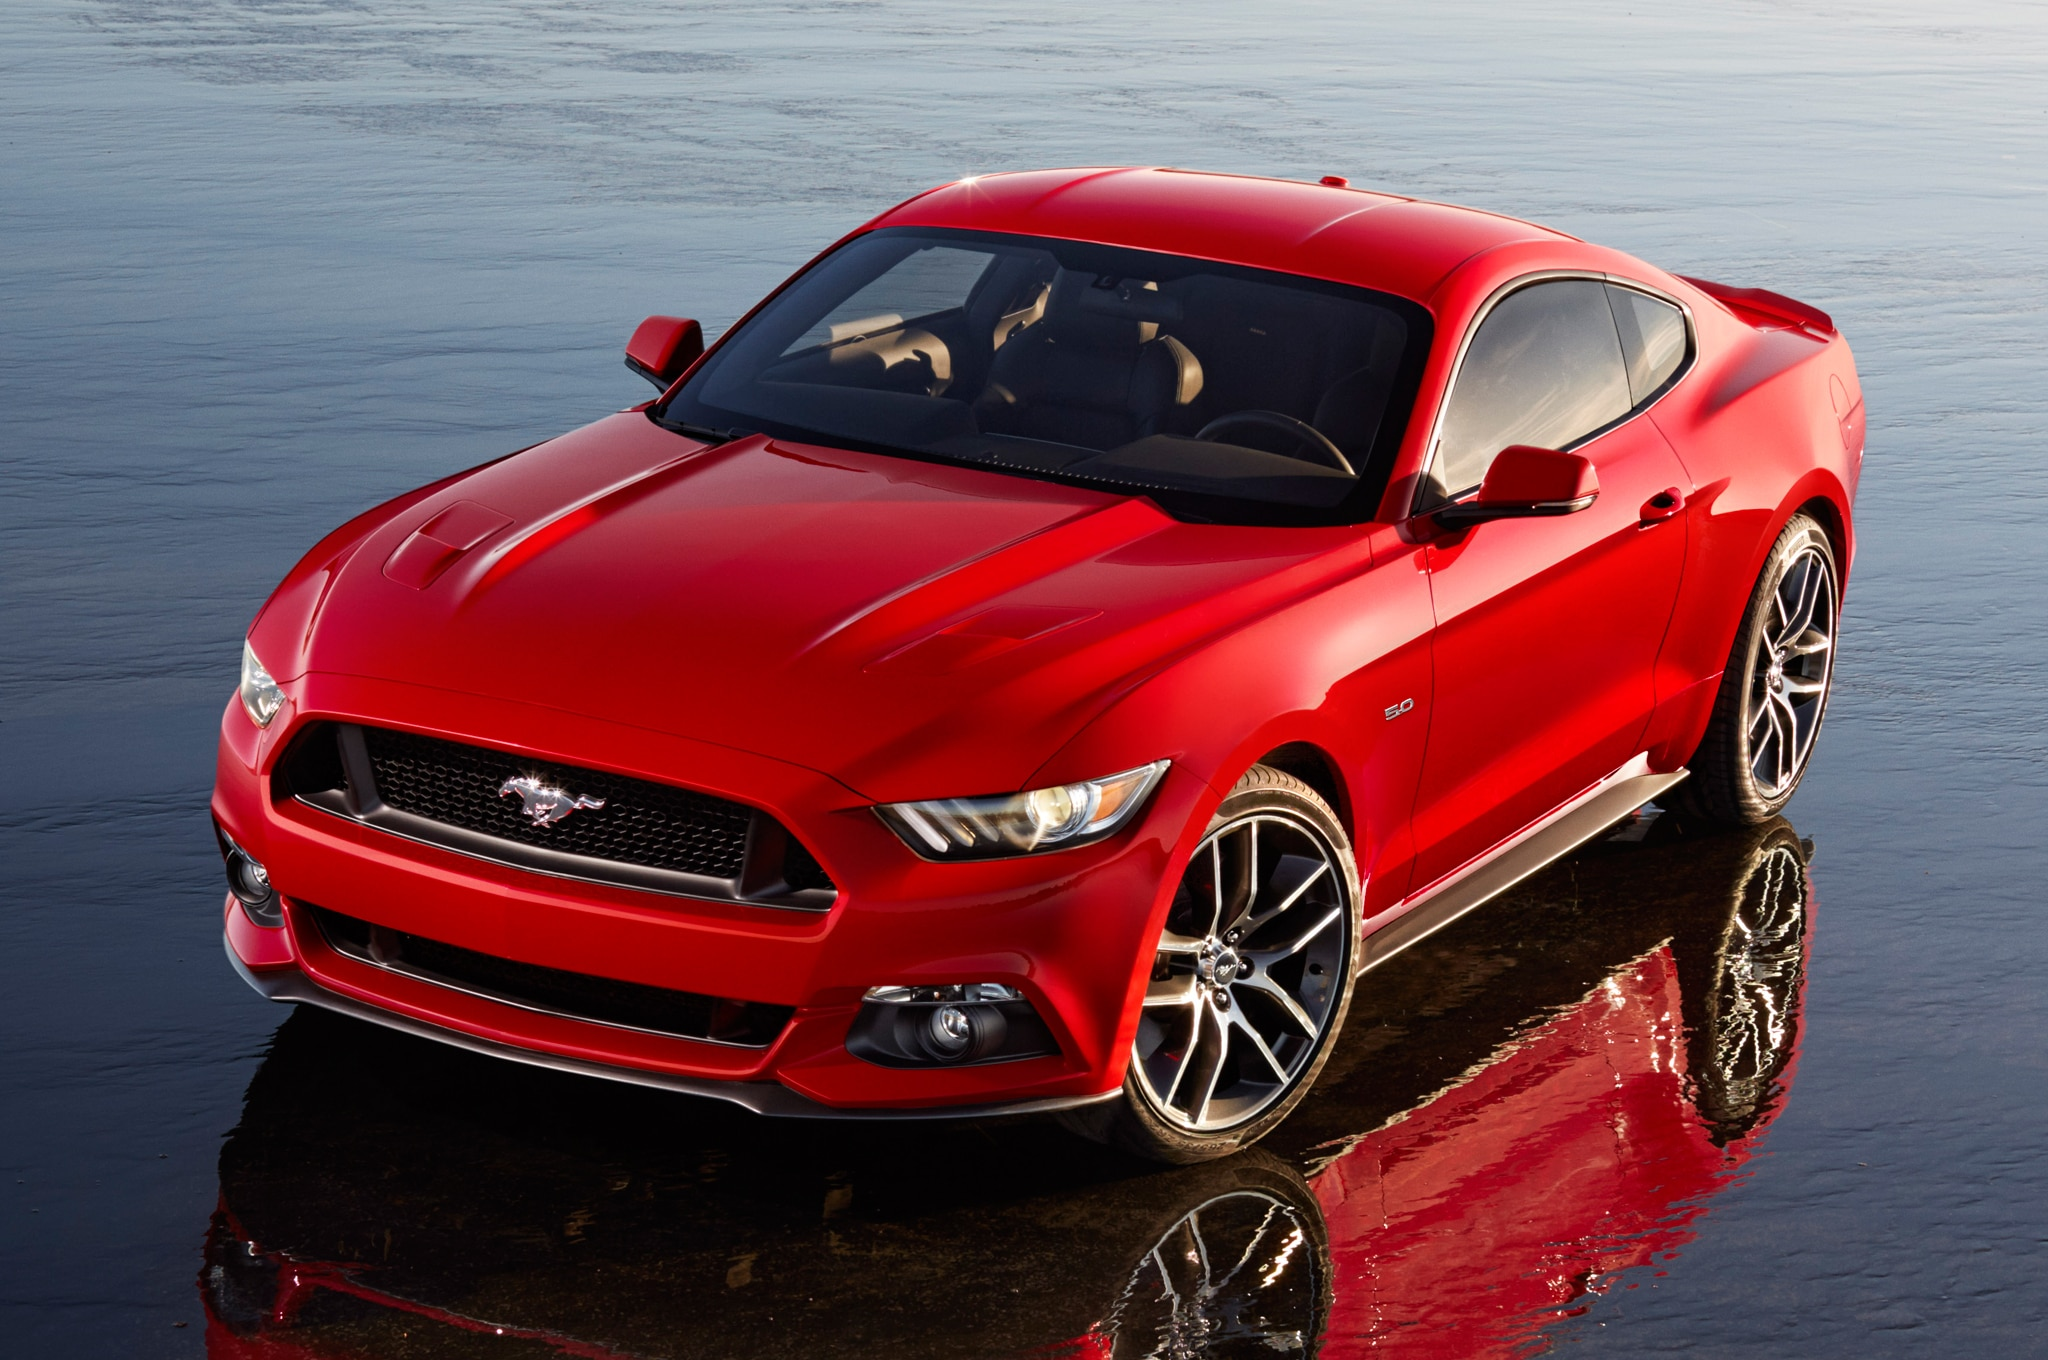 2015 Ford Mustang Front View1